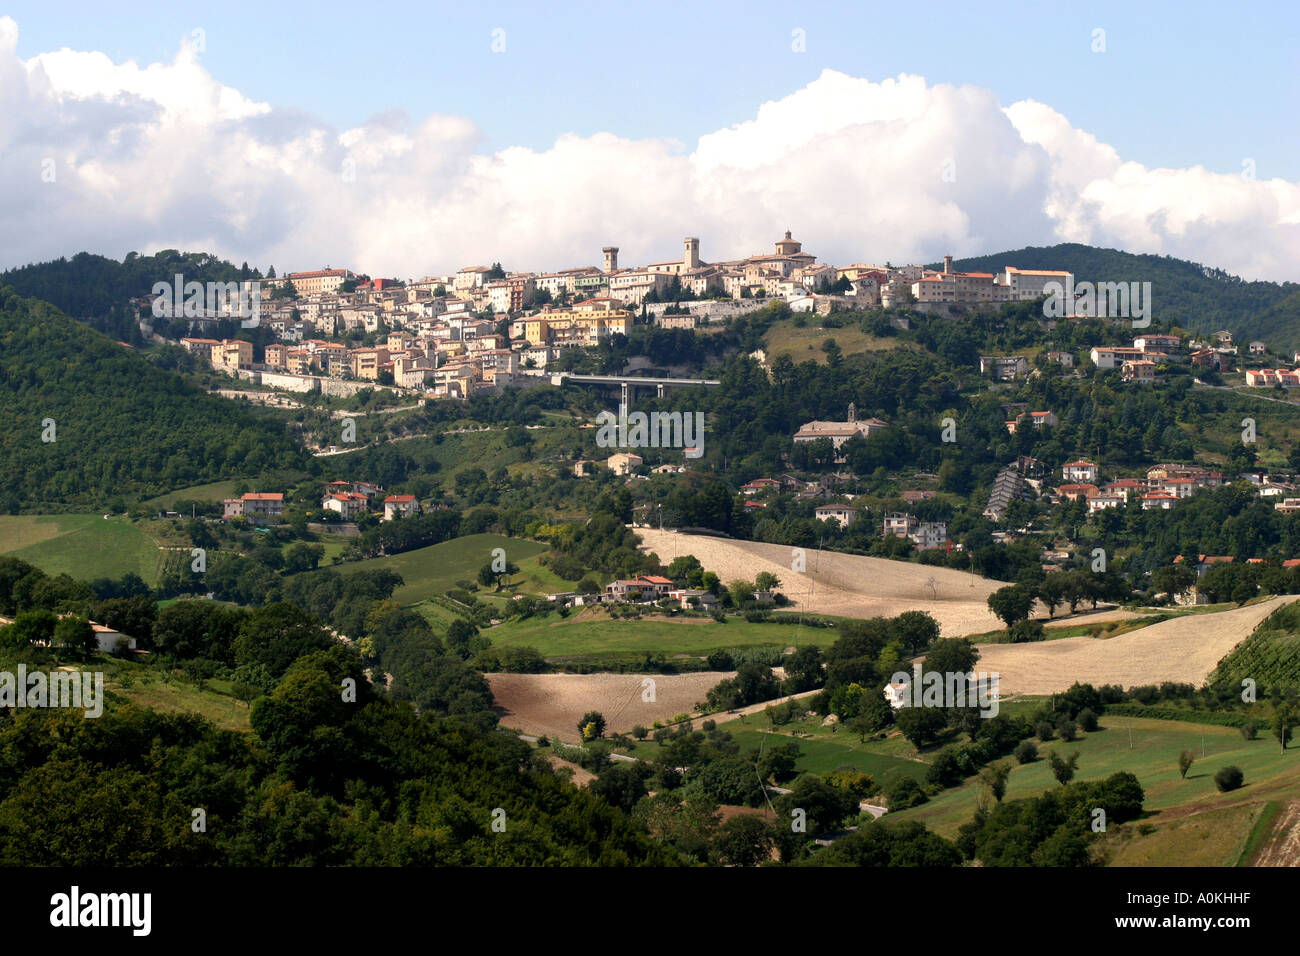 Areciva in the northern Marche province of Italy seen over typical patchwork fields courtryside . Stock Photo